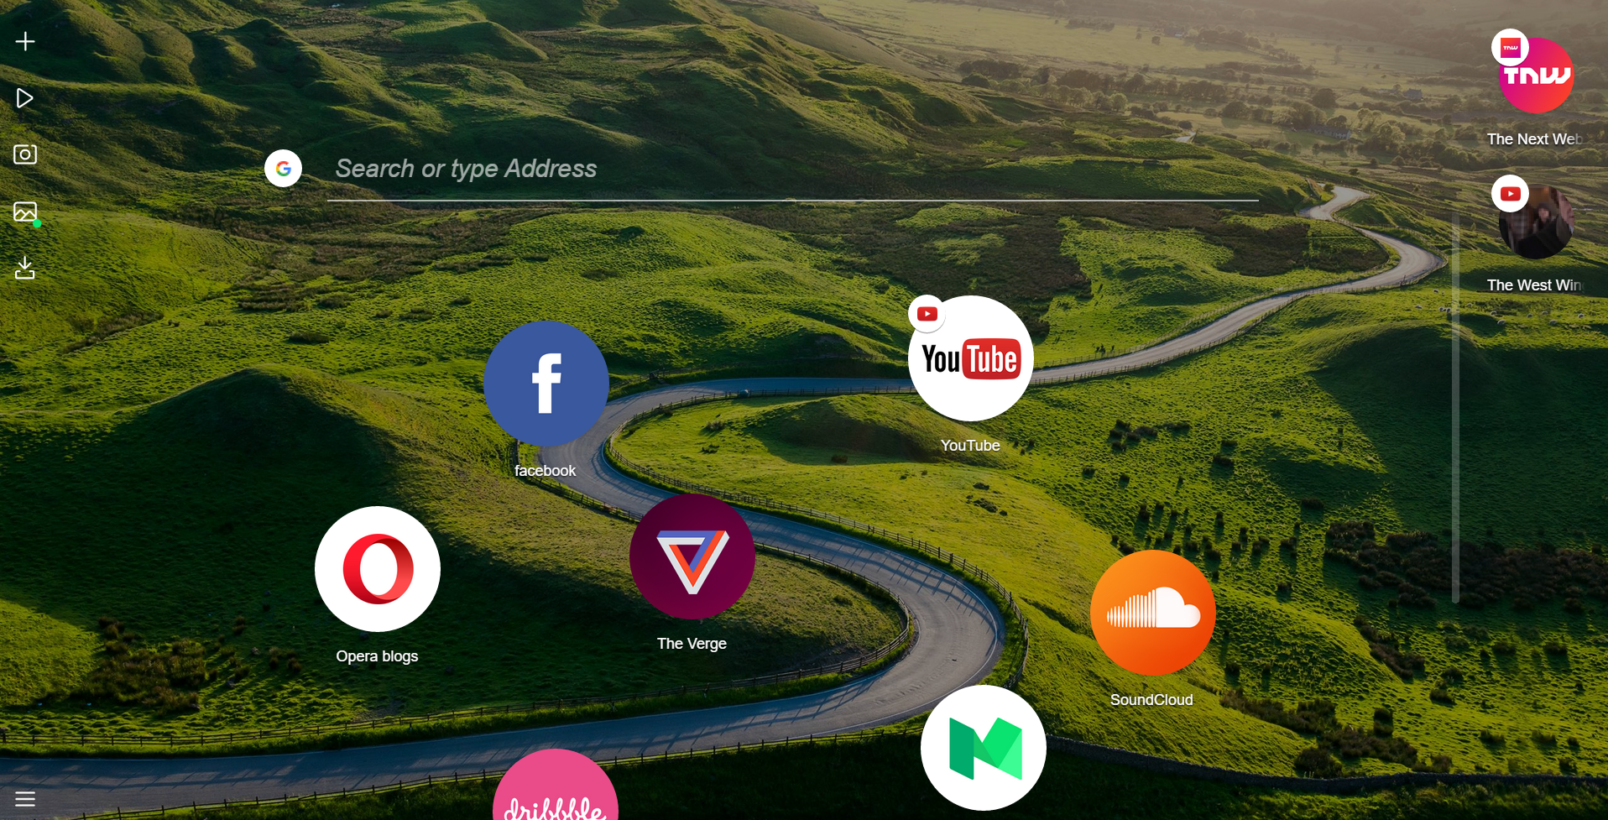 Opera introduced Neon is the new concept web browser